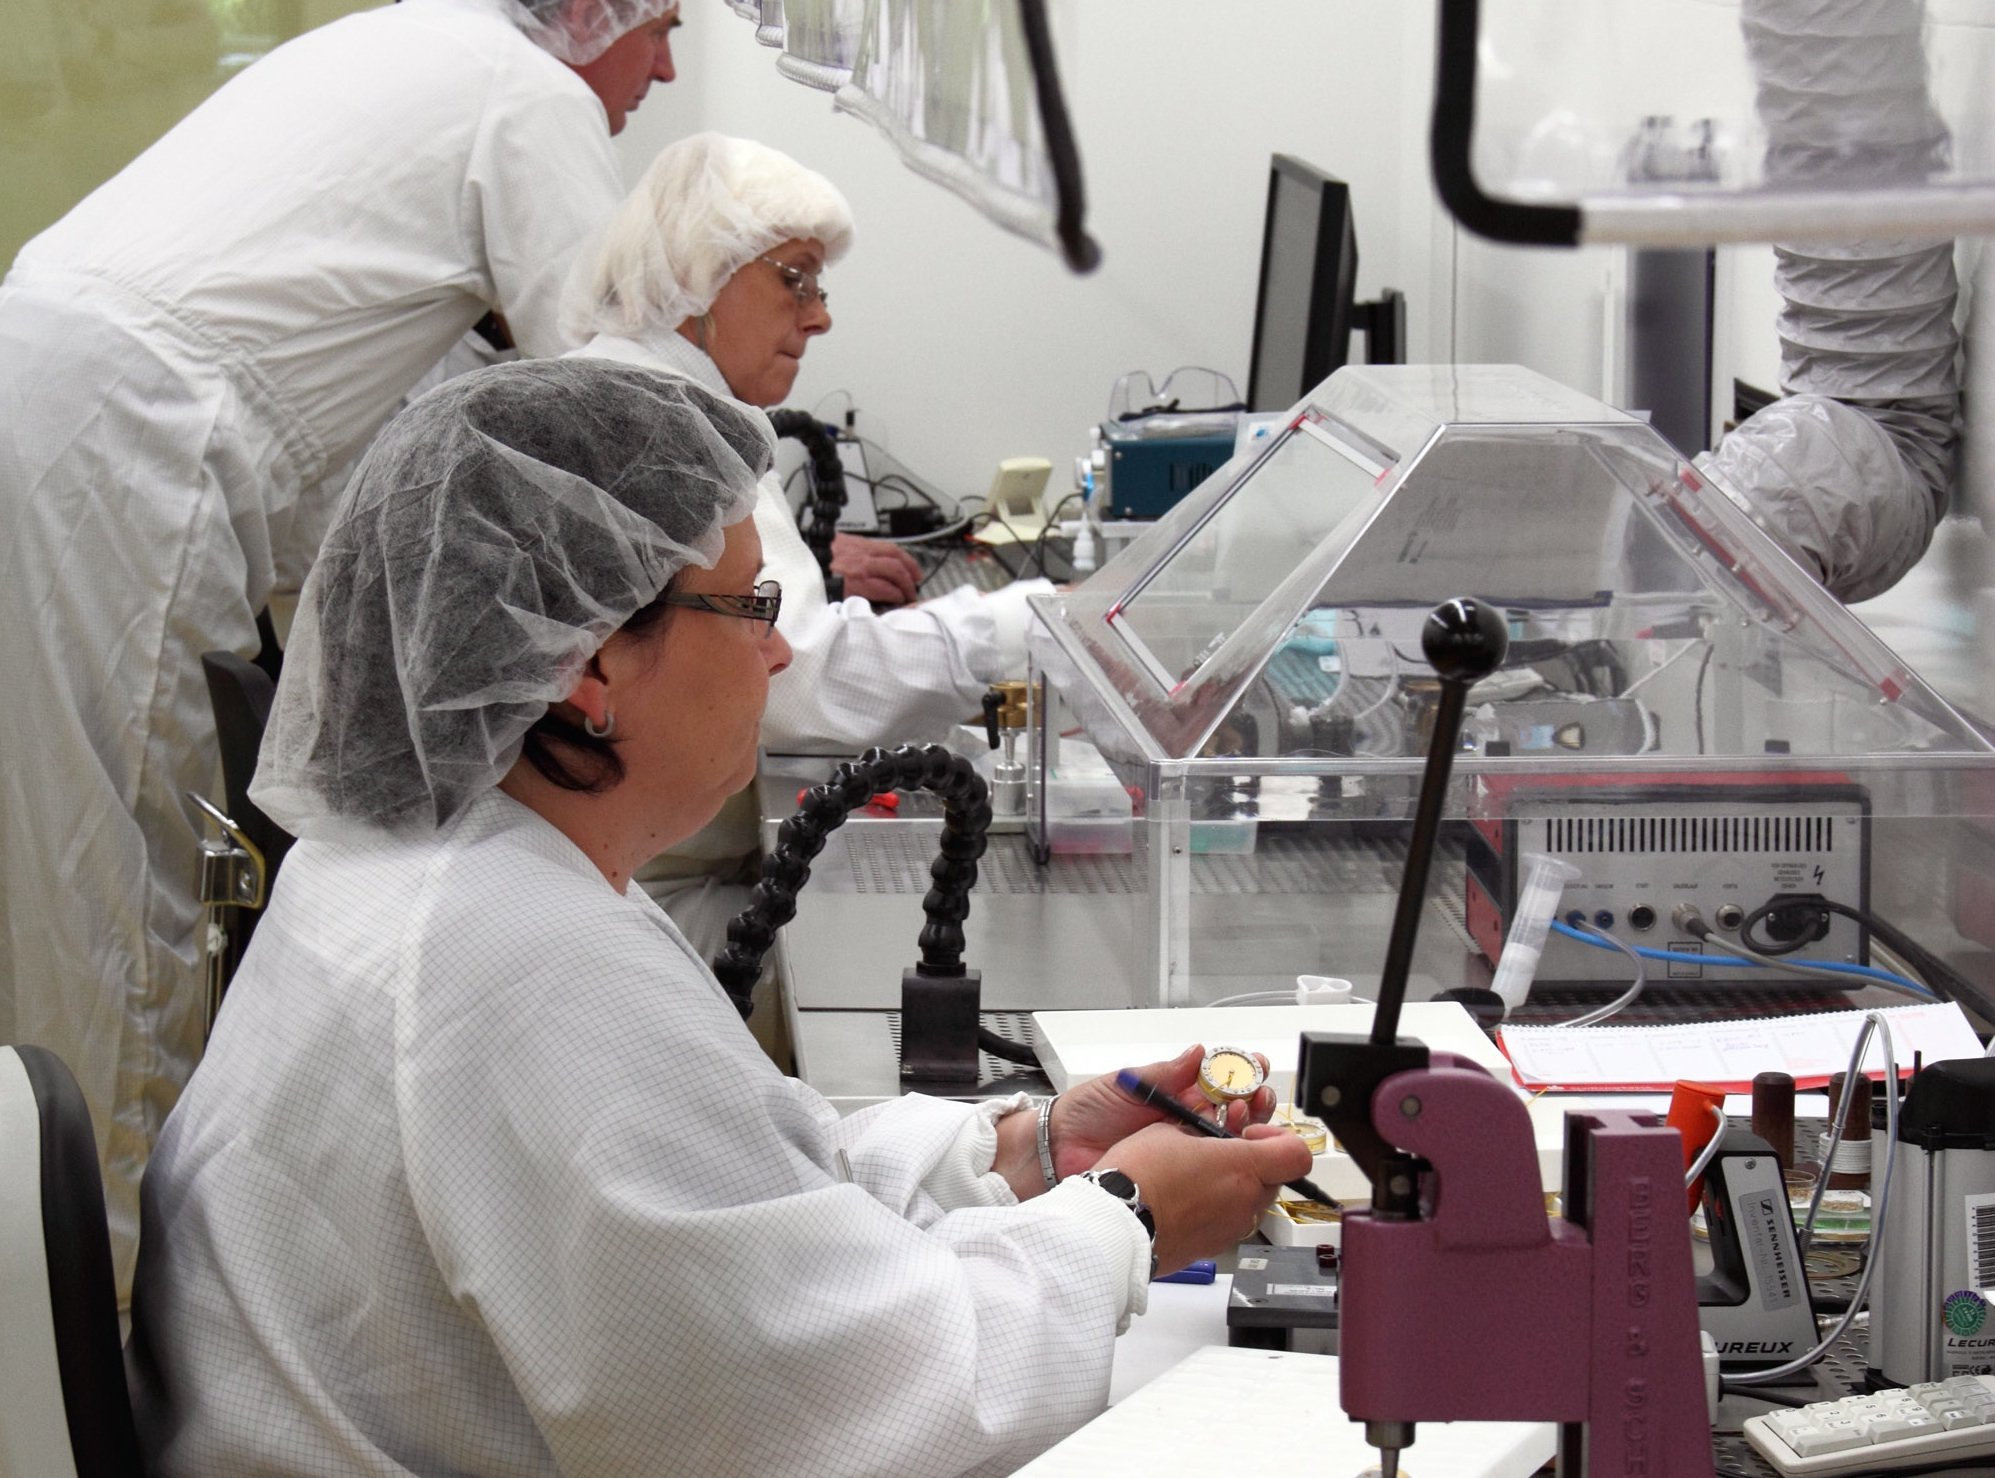 Neumann capsules are made by specially trained staff in a state-of-the-art clean room.